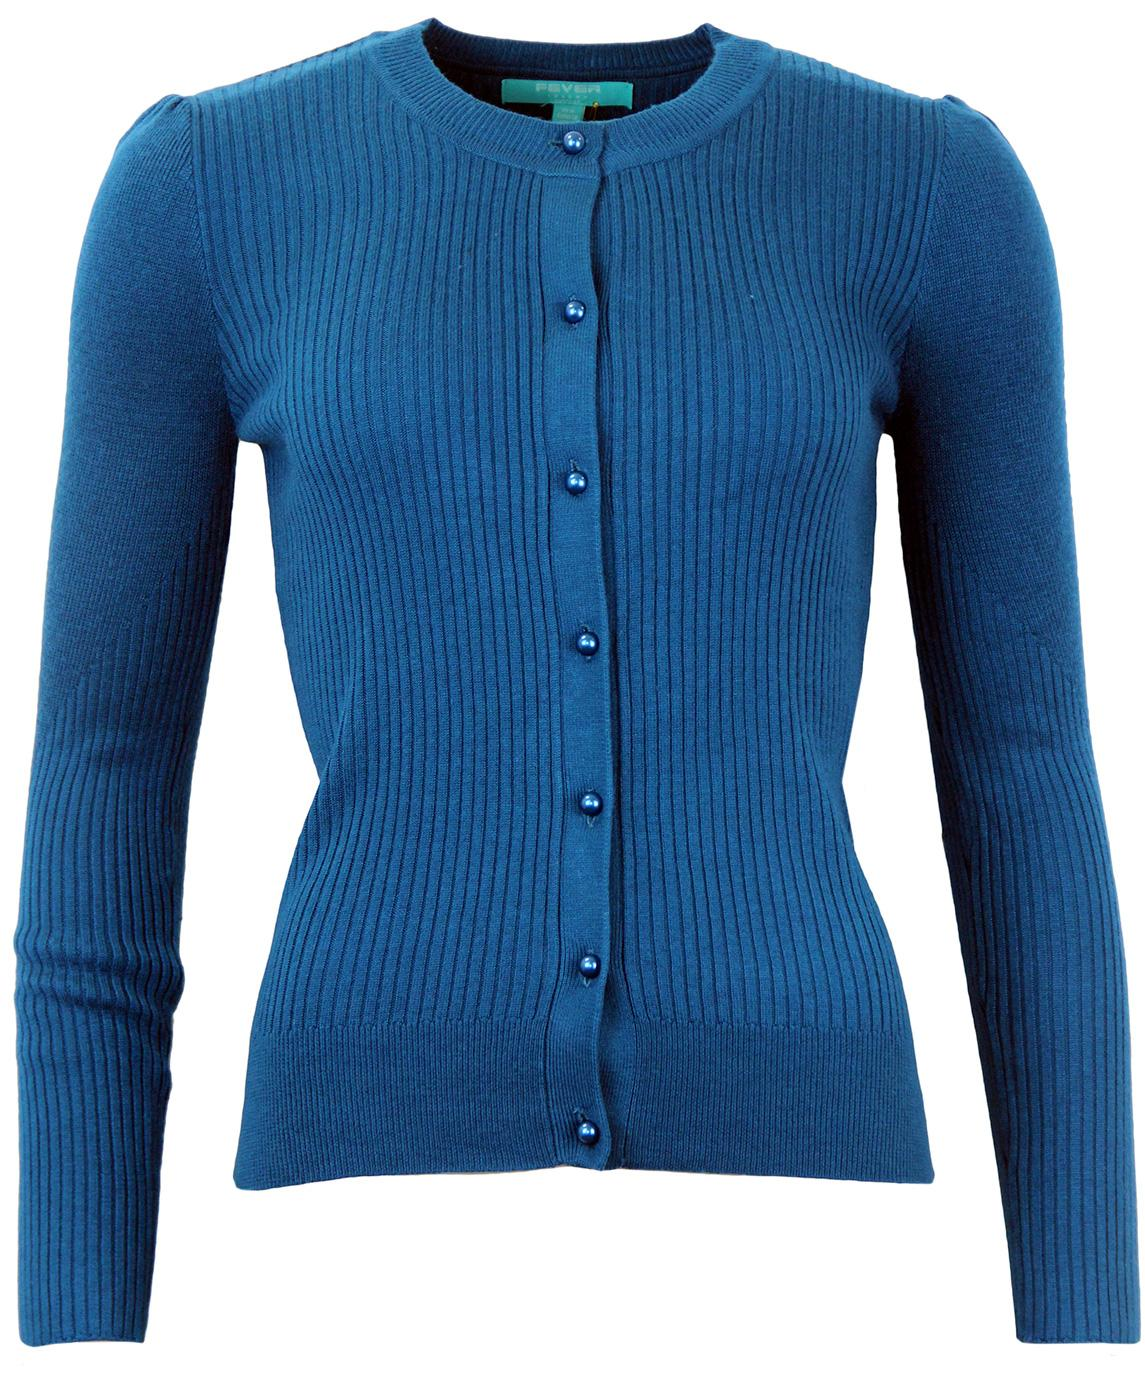 Turin FEVER Retro 50s Style Ribbed Knit Cardigan